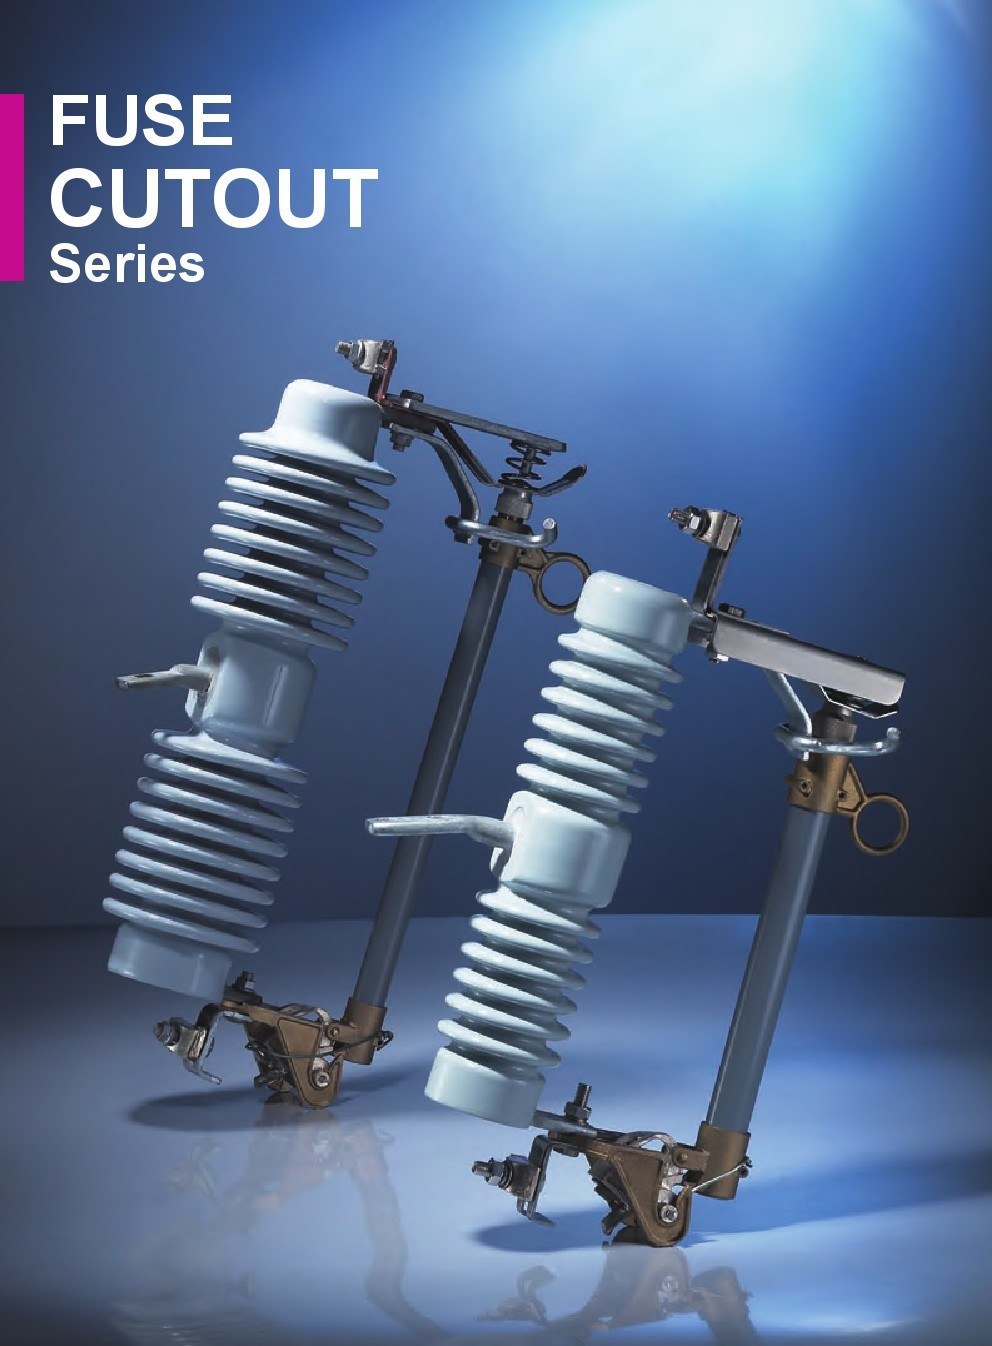 Outdoor Expulsion Drop-out Type Distribution Fuse Cutout Series